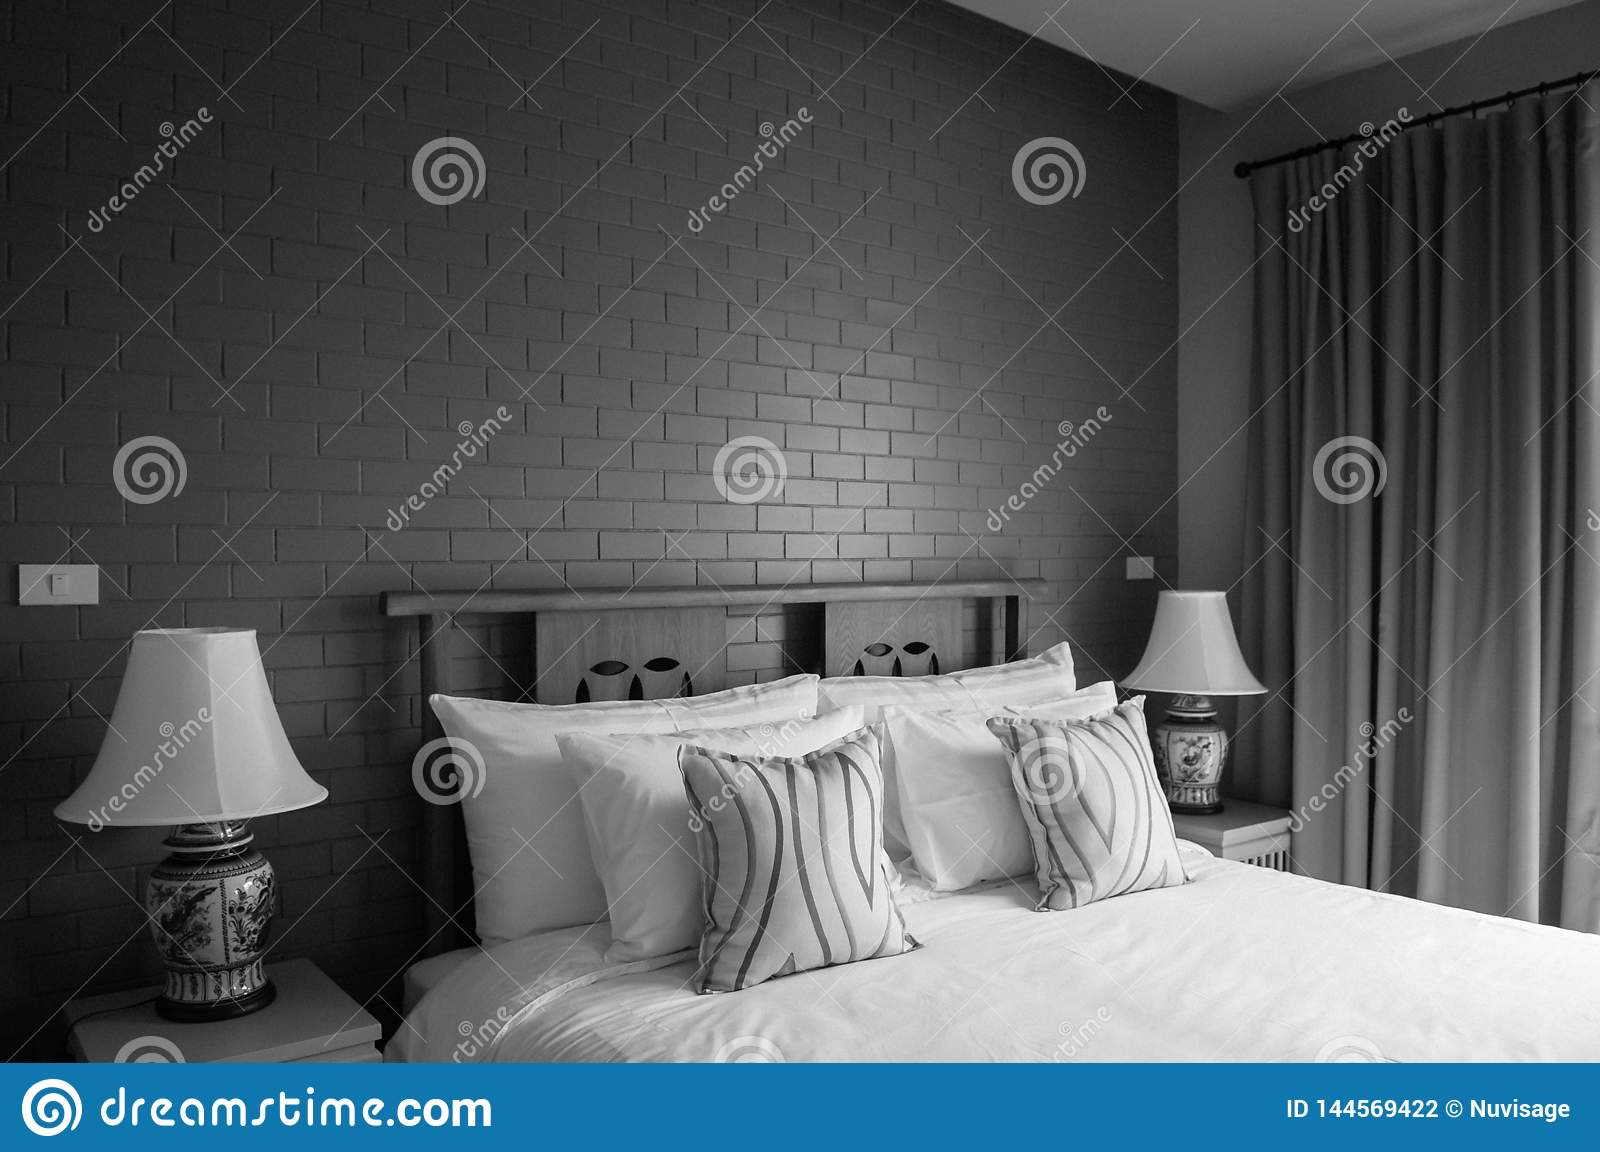 Vintage Cozy Country Home Bedroom Decoration With Classic Dark Grey Brick Wall Editorial Photography Image Of Comfortable Asian 144569422